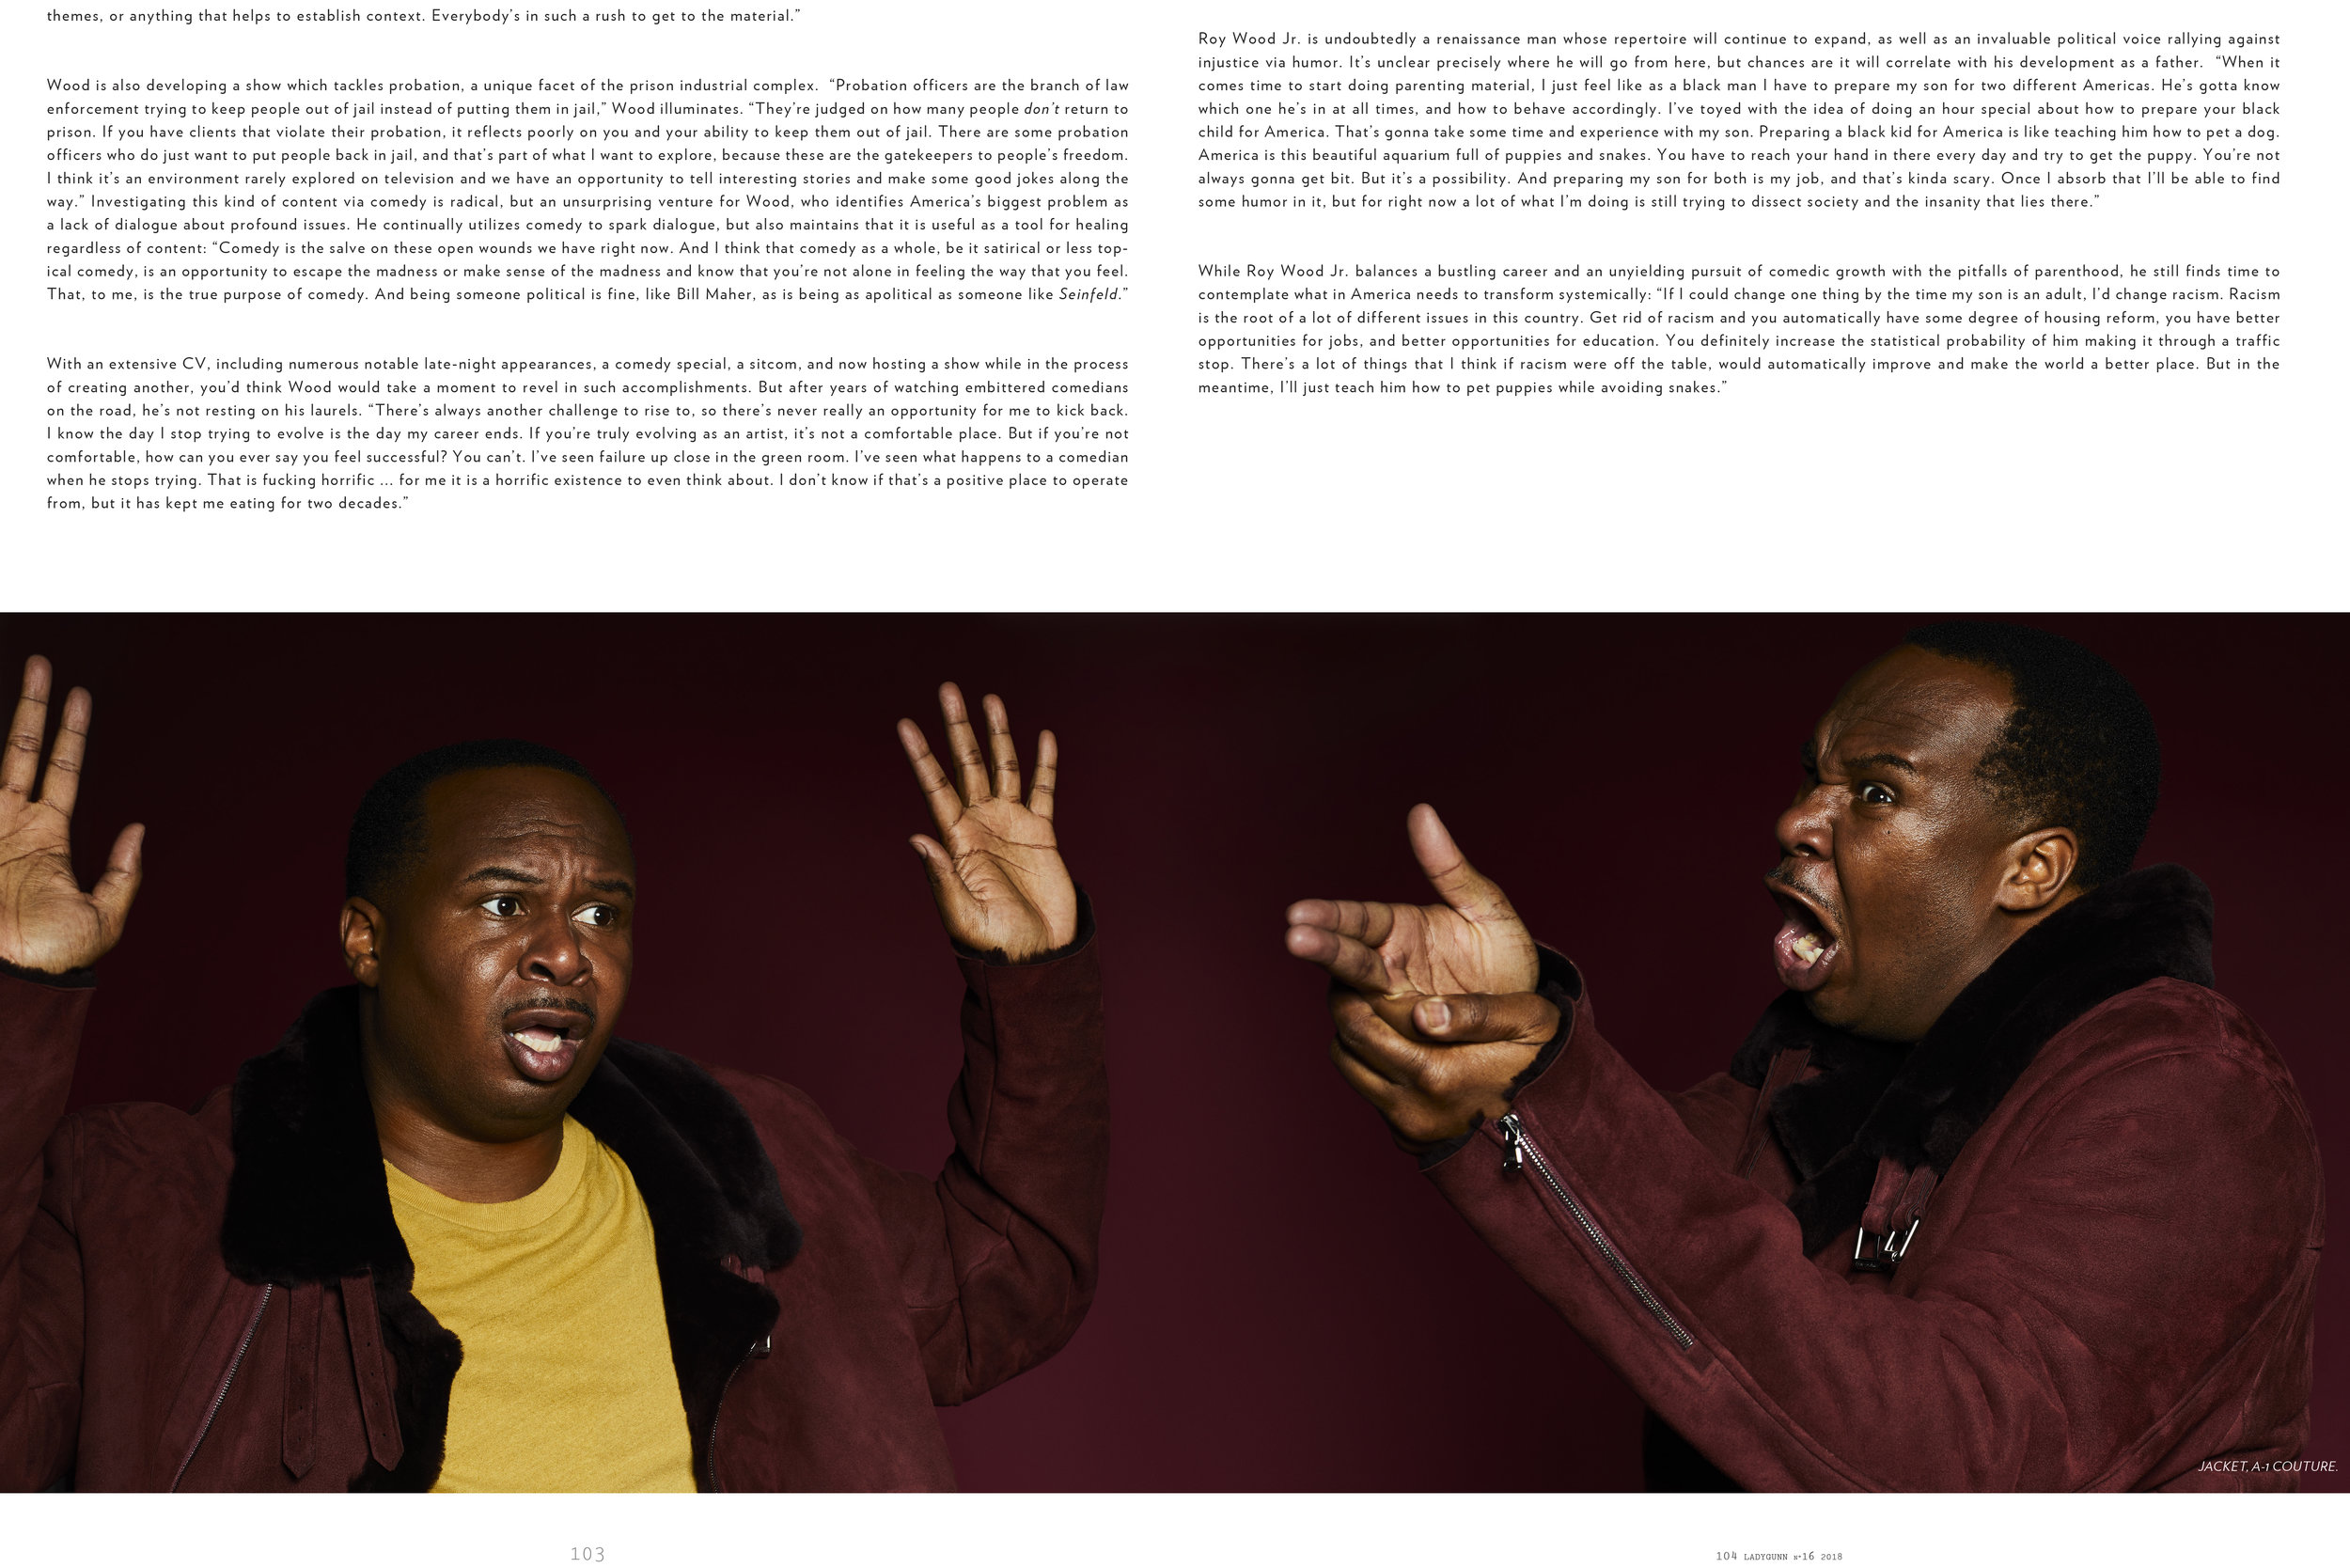 ROY WOOD JR. x LADYGUNN MAGAZINE